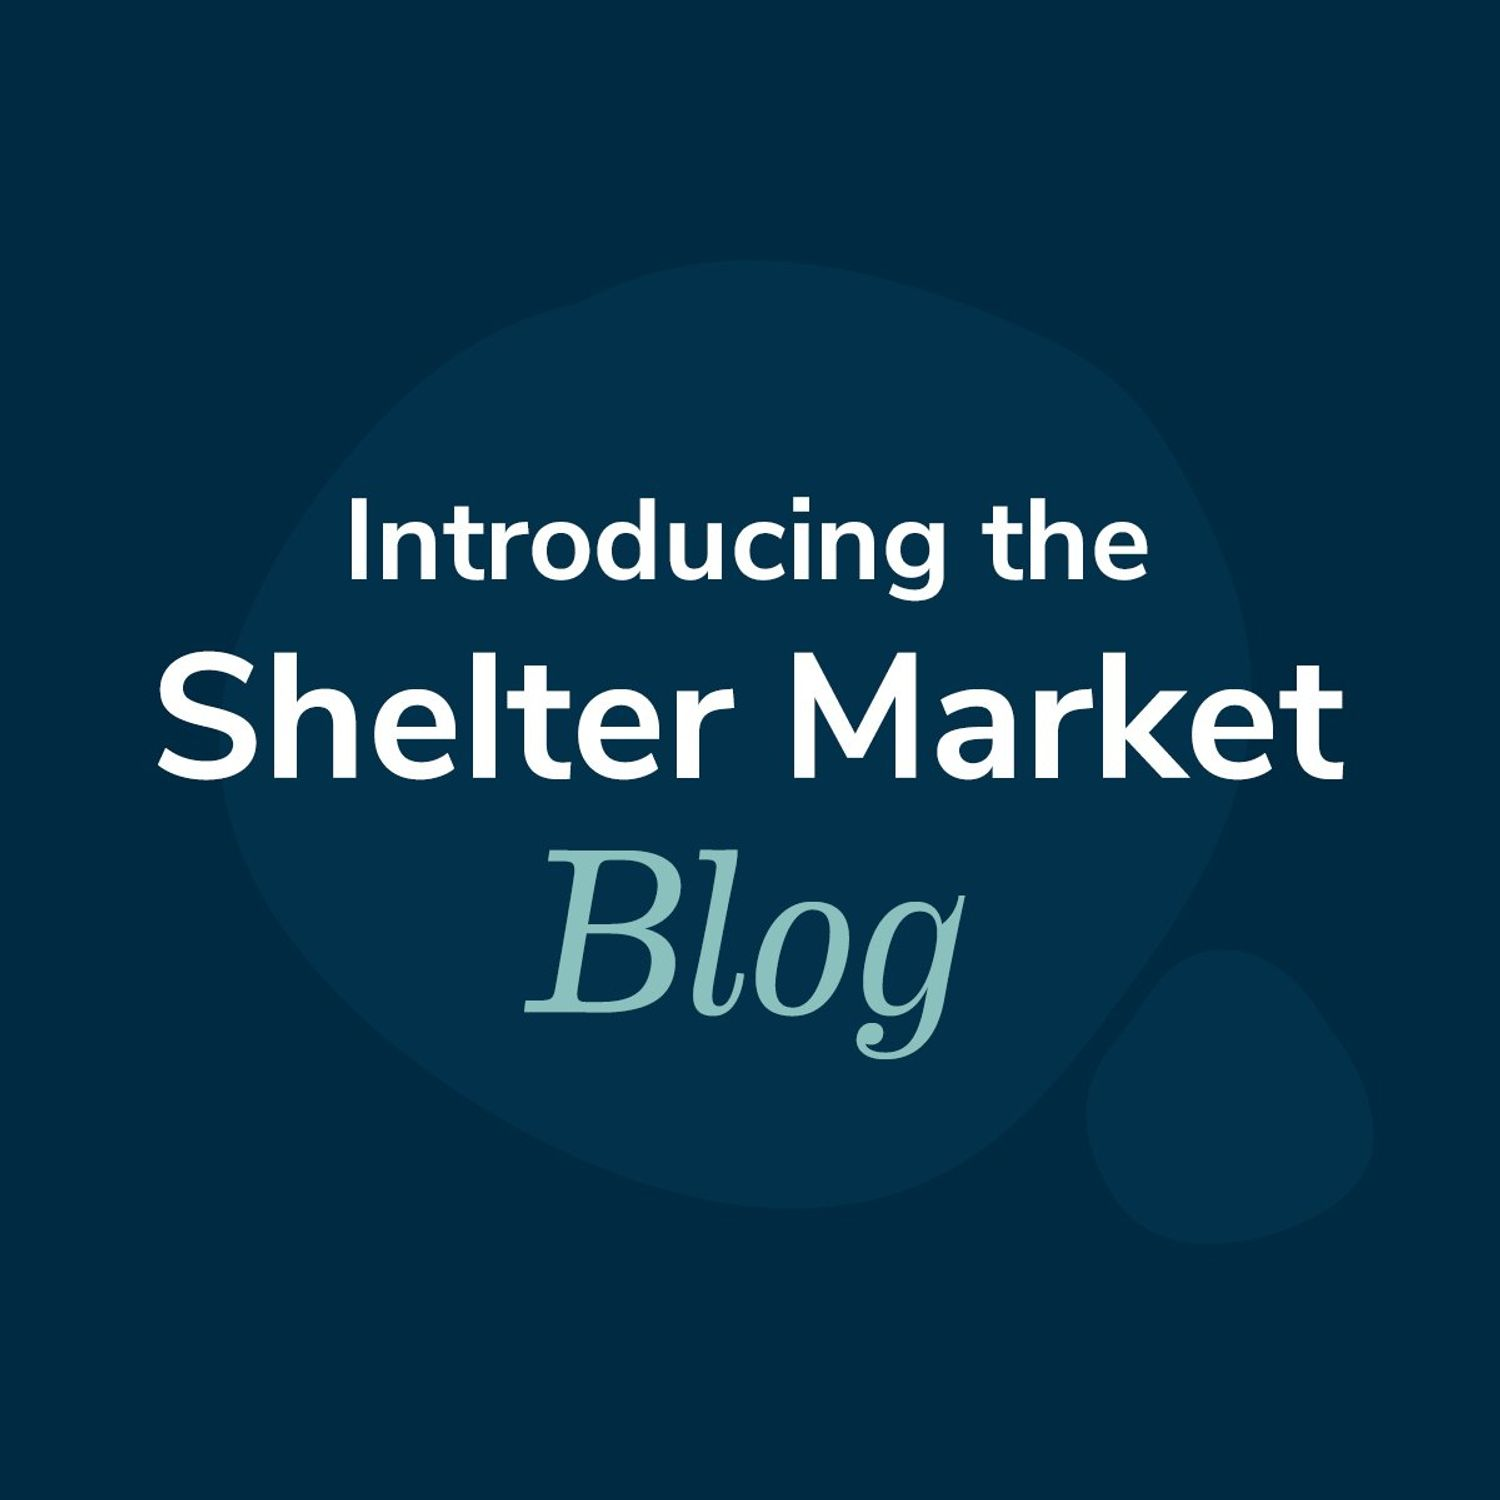 Introducing the Shelter Market Blog